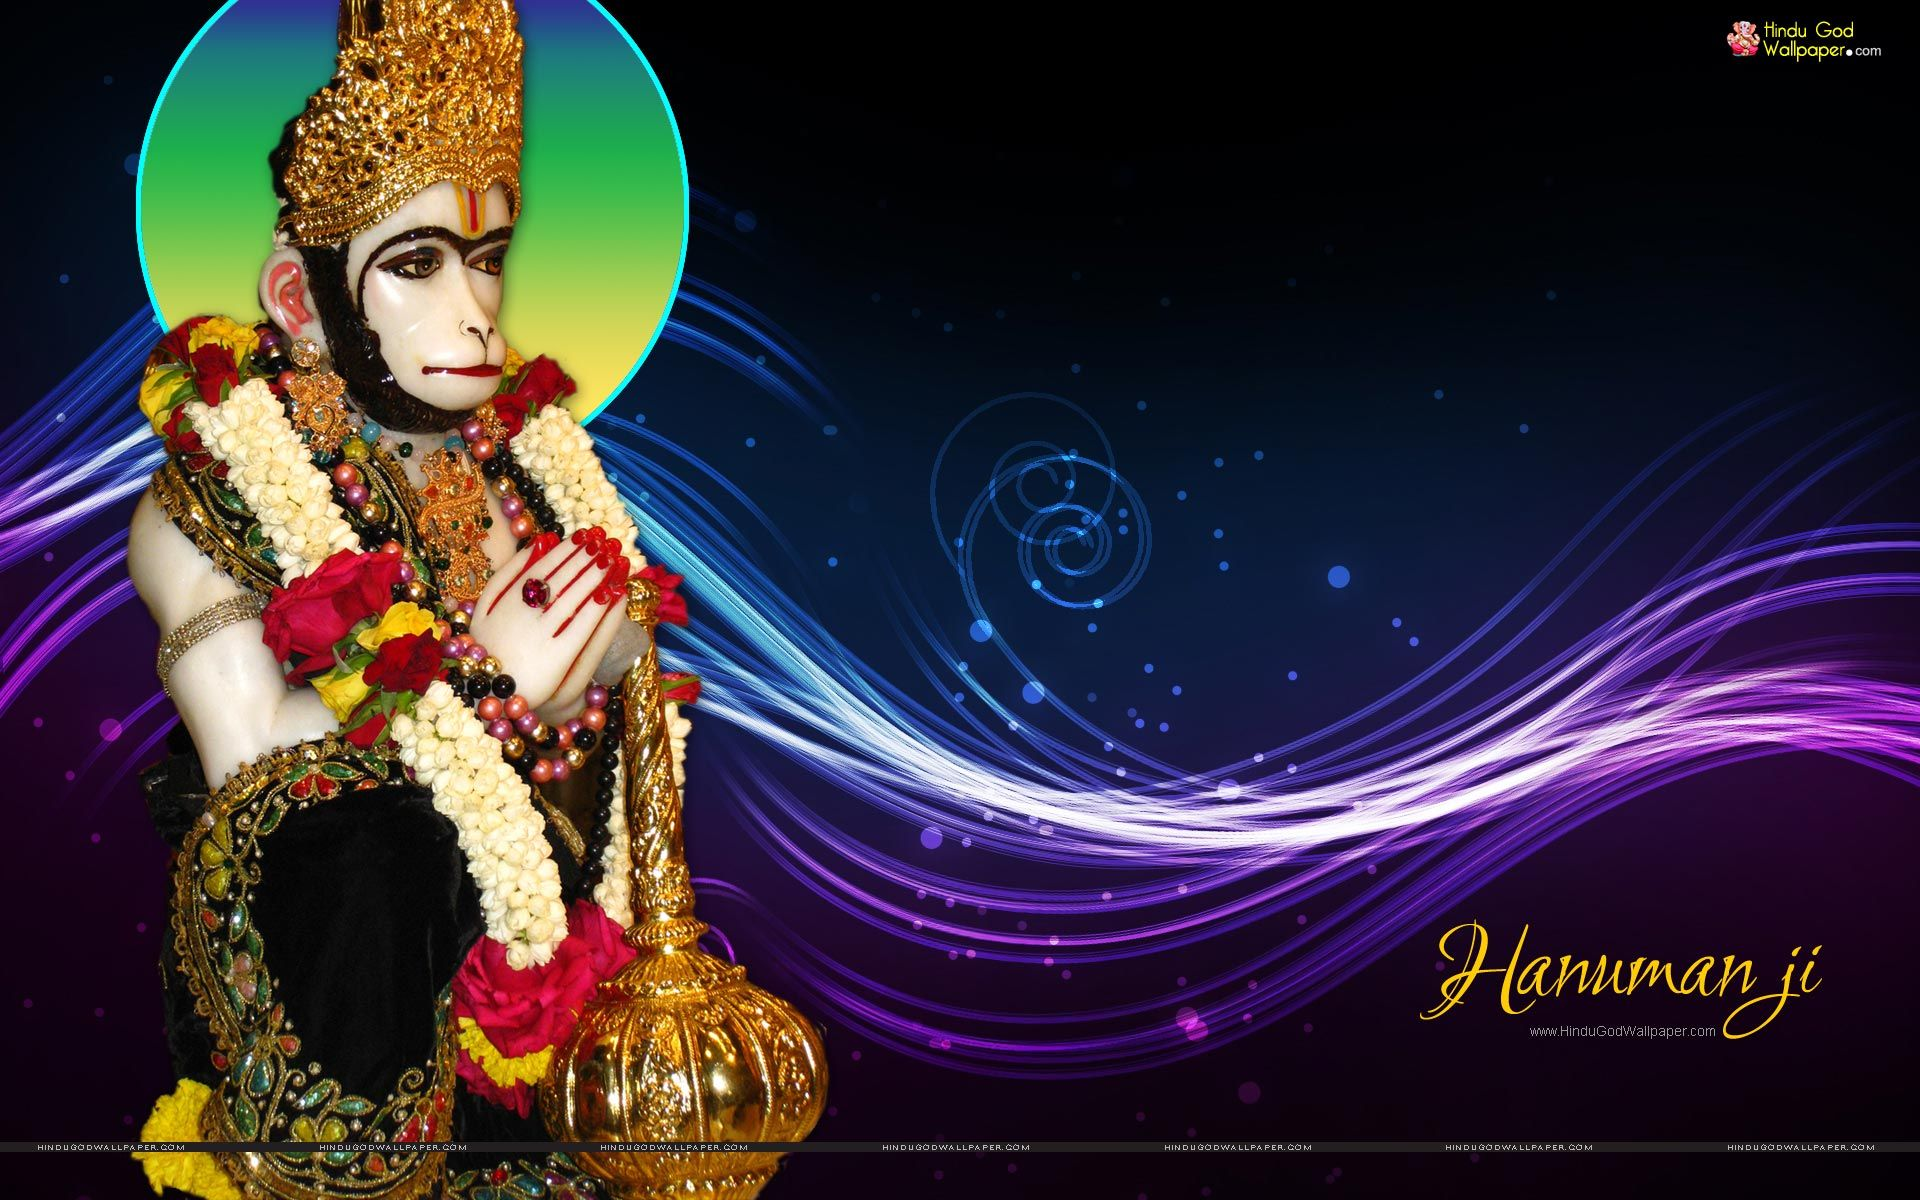 Lord Hanuman Hd Wallpaper Full Size For Desktop God Hanuman Lord